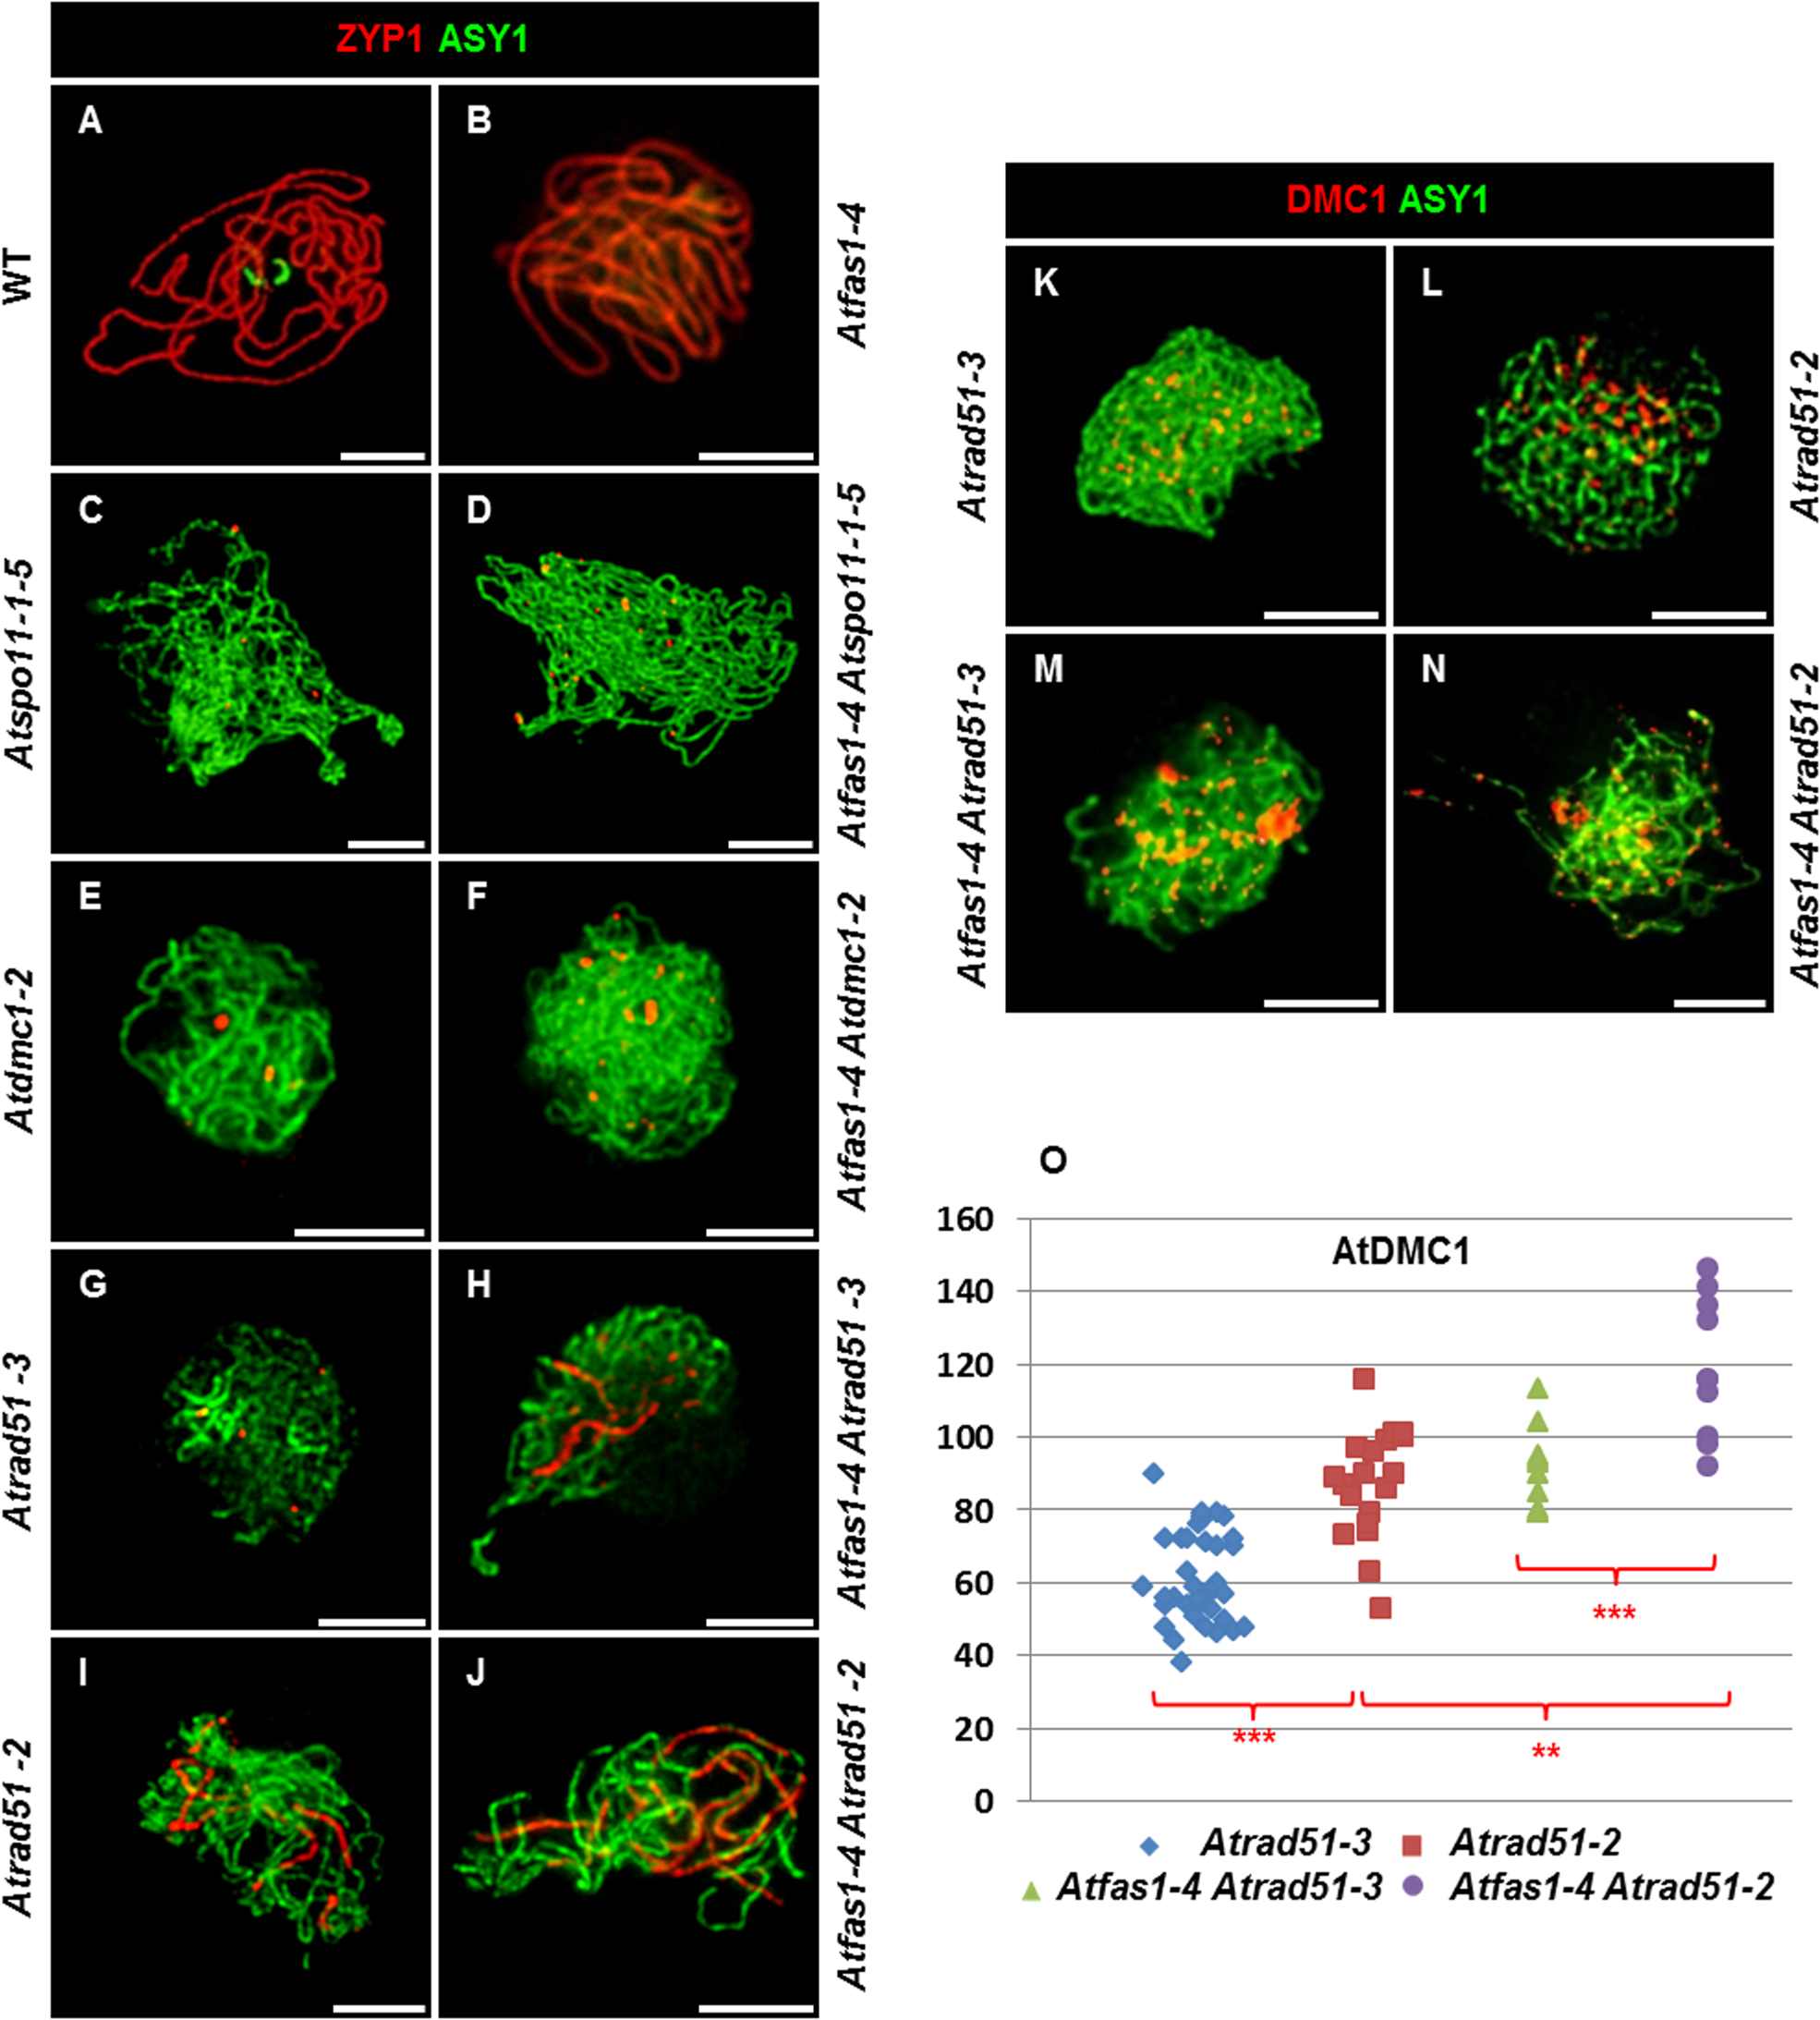 AtRAD51 and AtDMC1 could play different roles in the synaptic process.